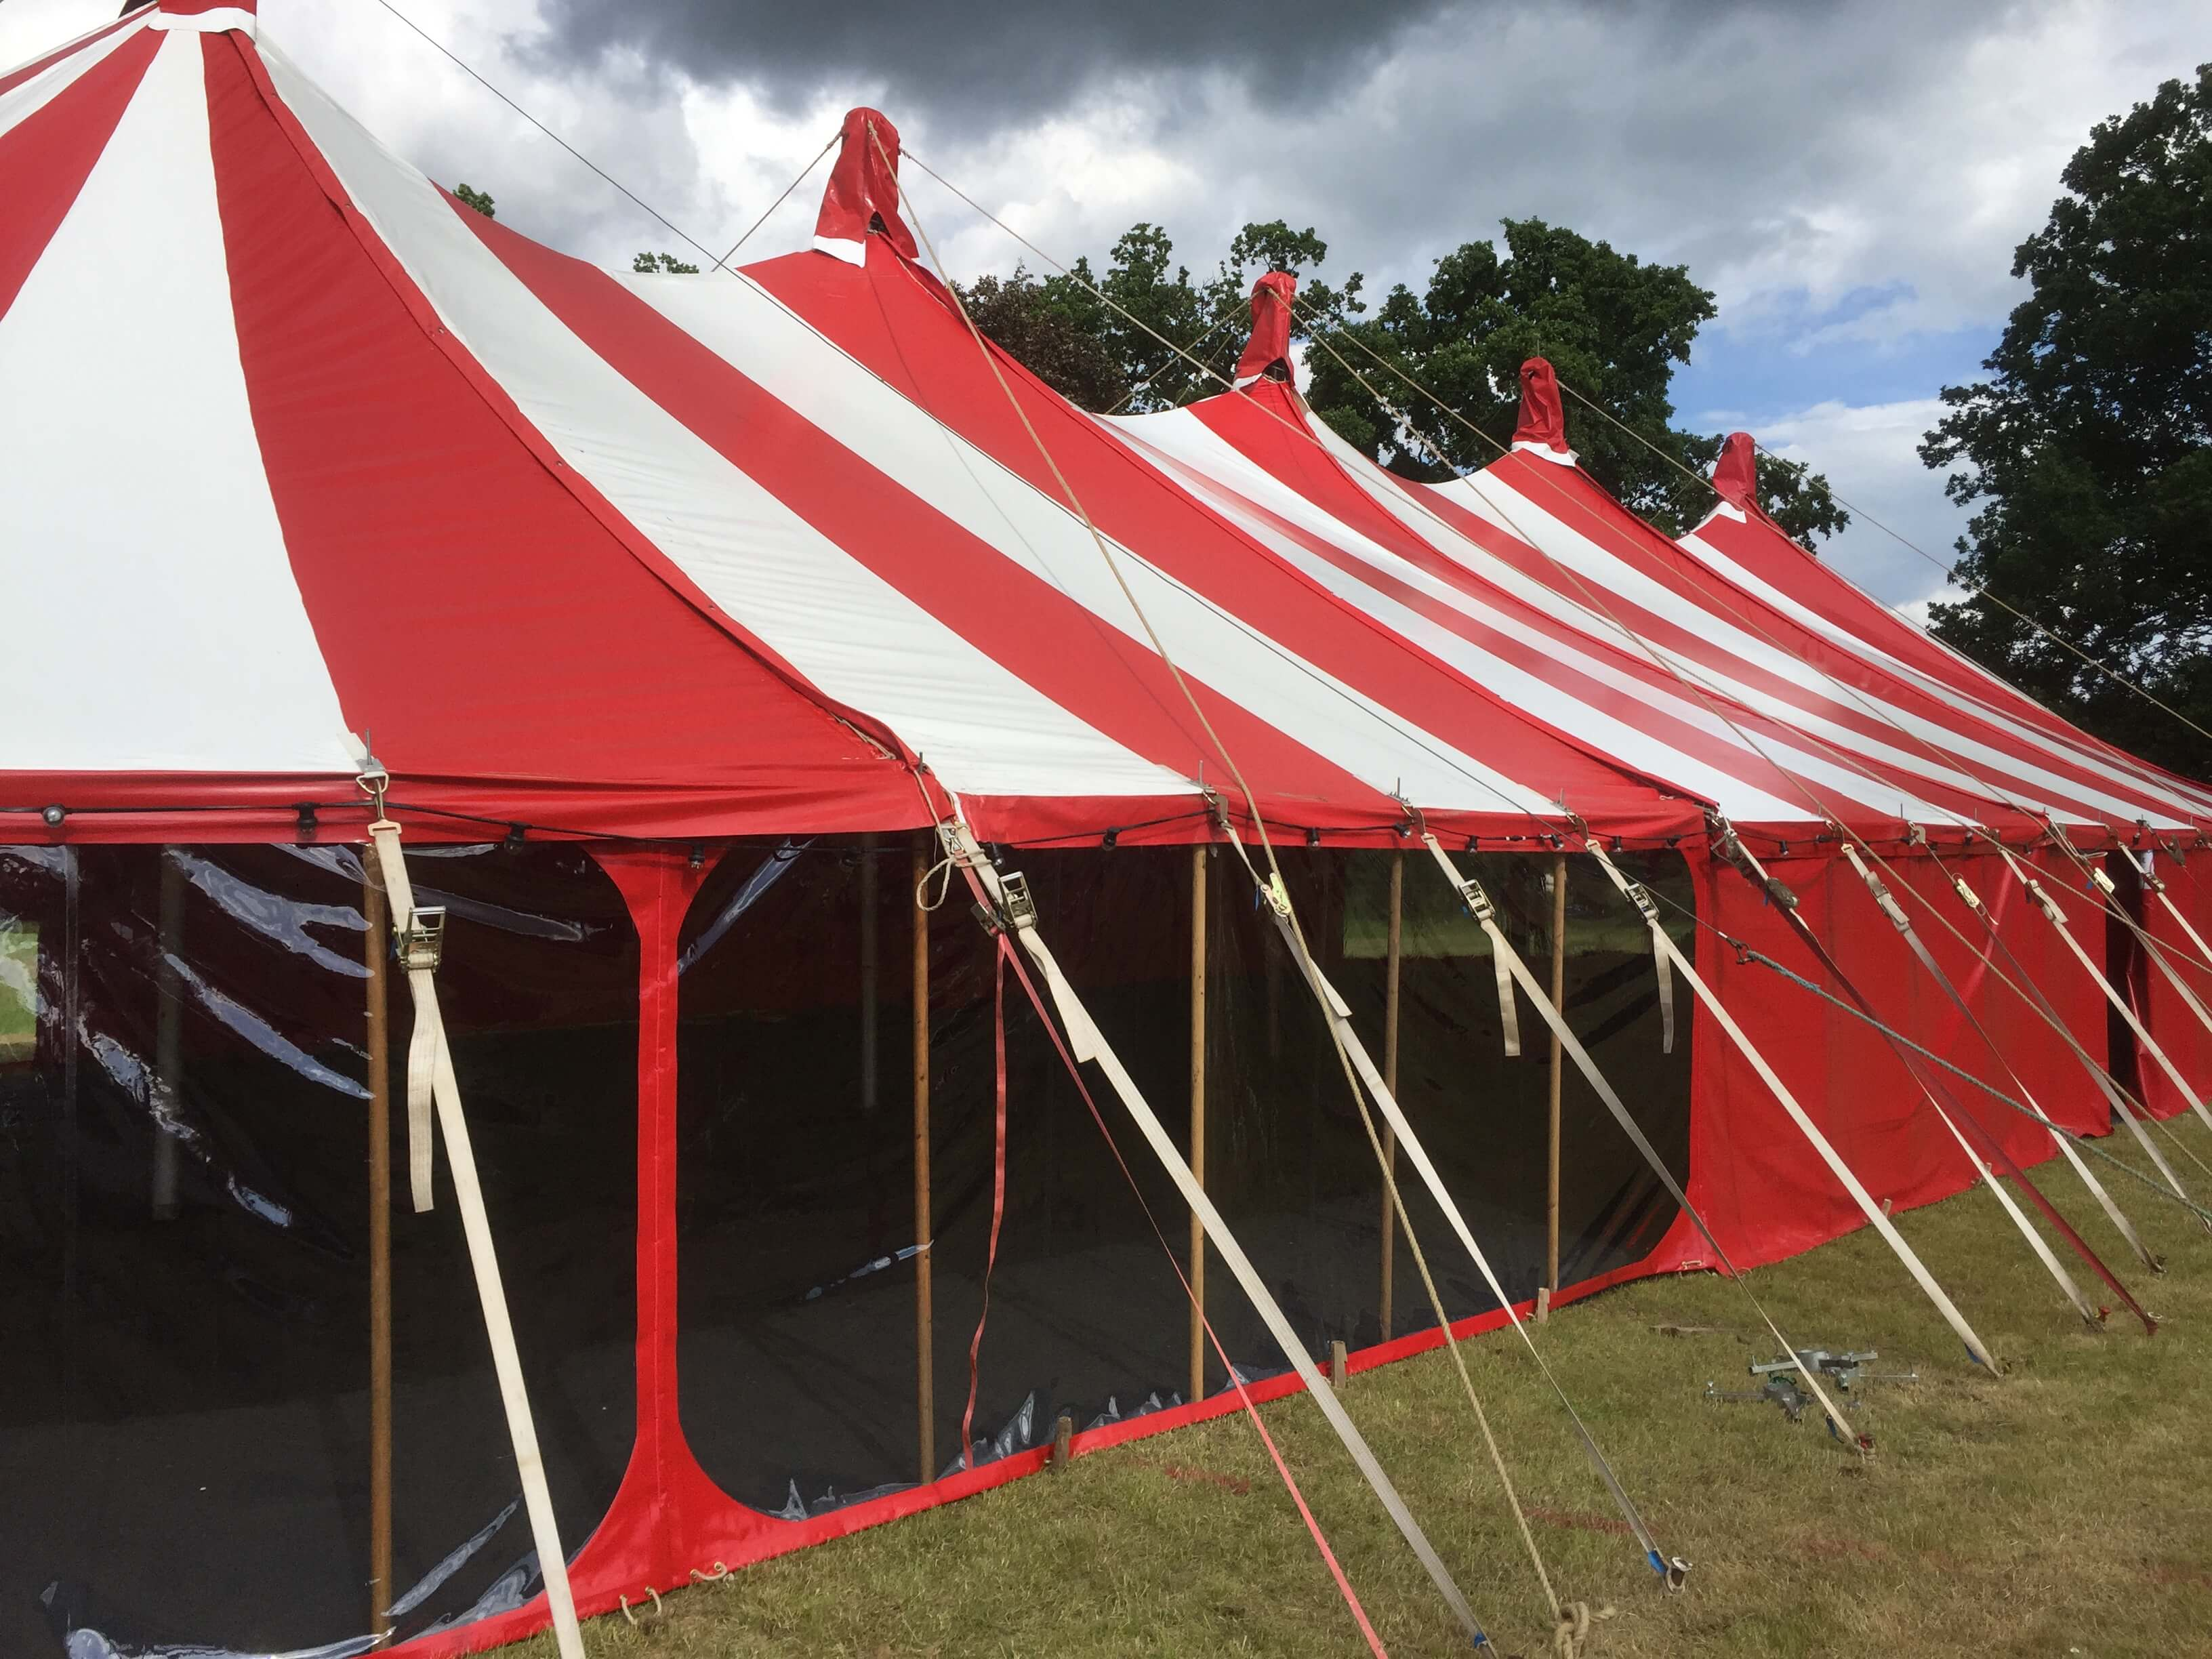 Window Walls on a big red & white Big Top